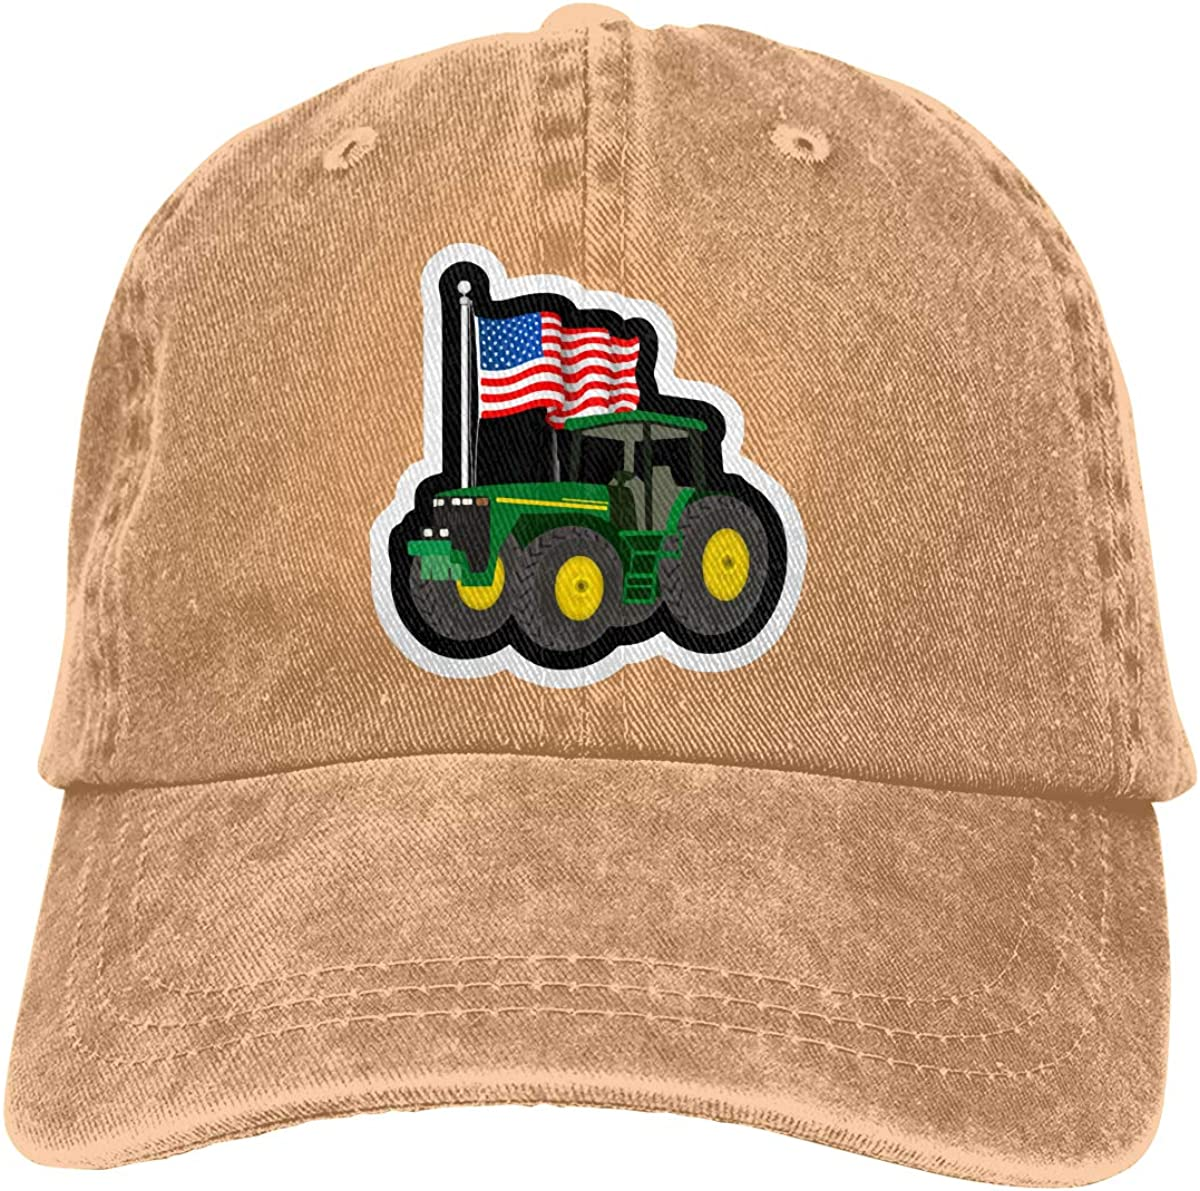 PMGM-C Tractor with American Flag Unisex Personalize Cowboy Hat Hip Hop Cap Adjustable Baseball Cap